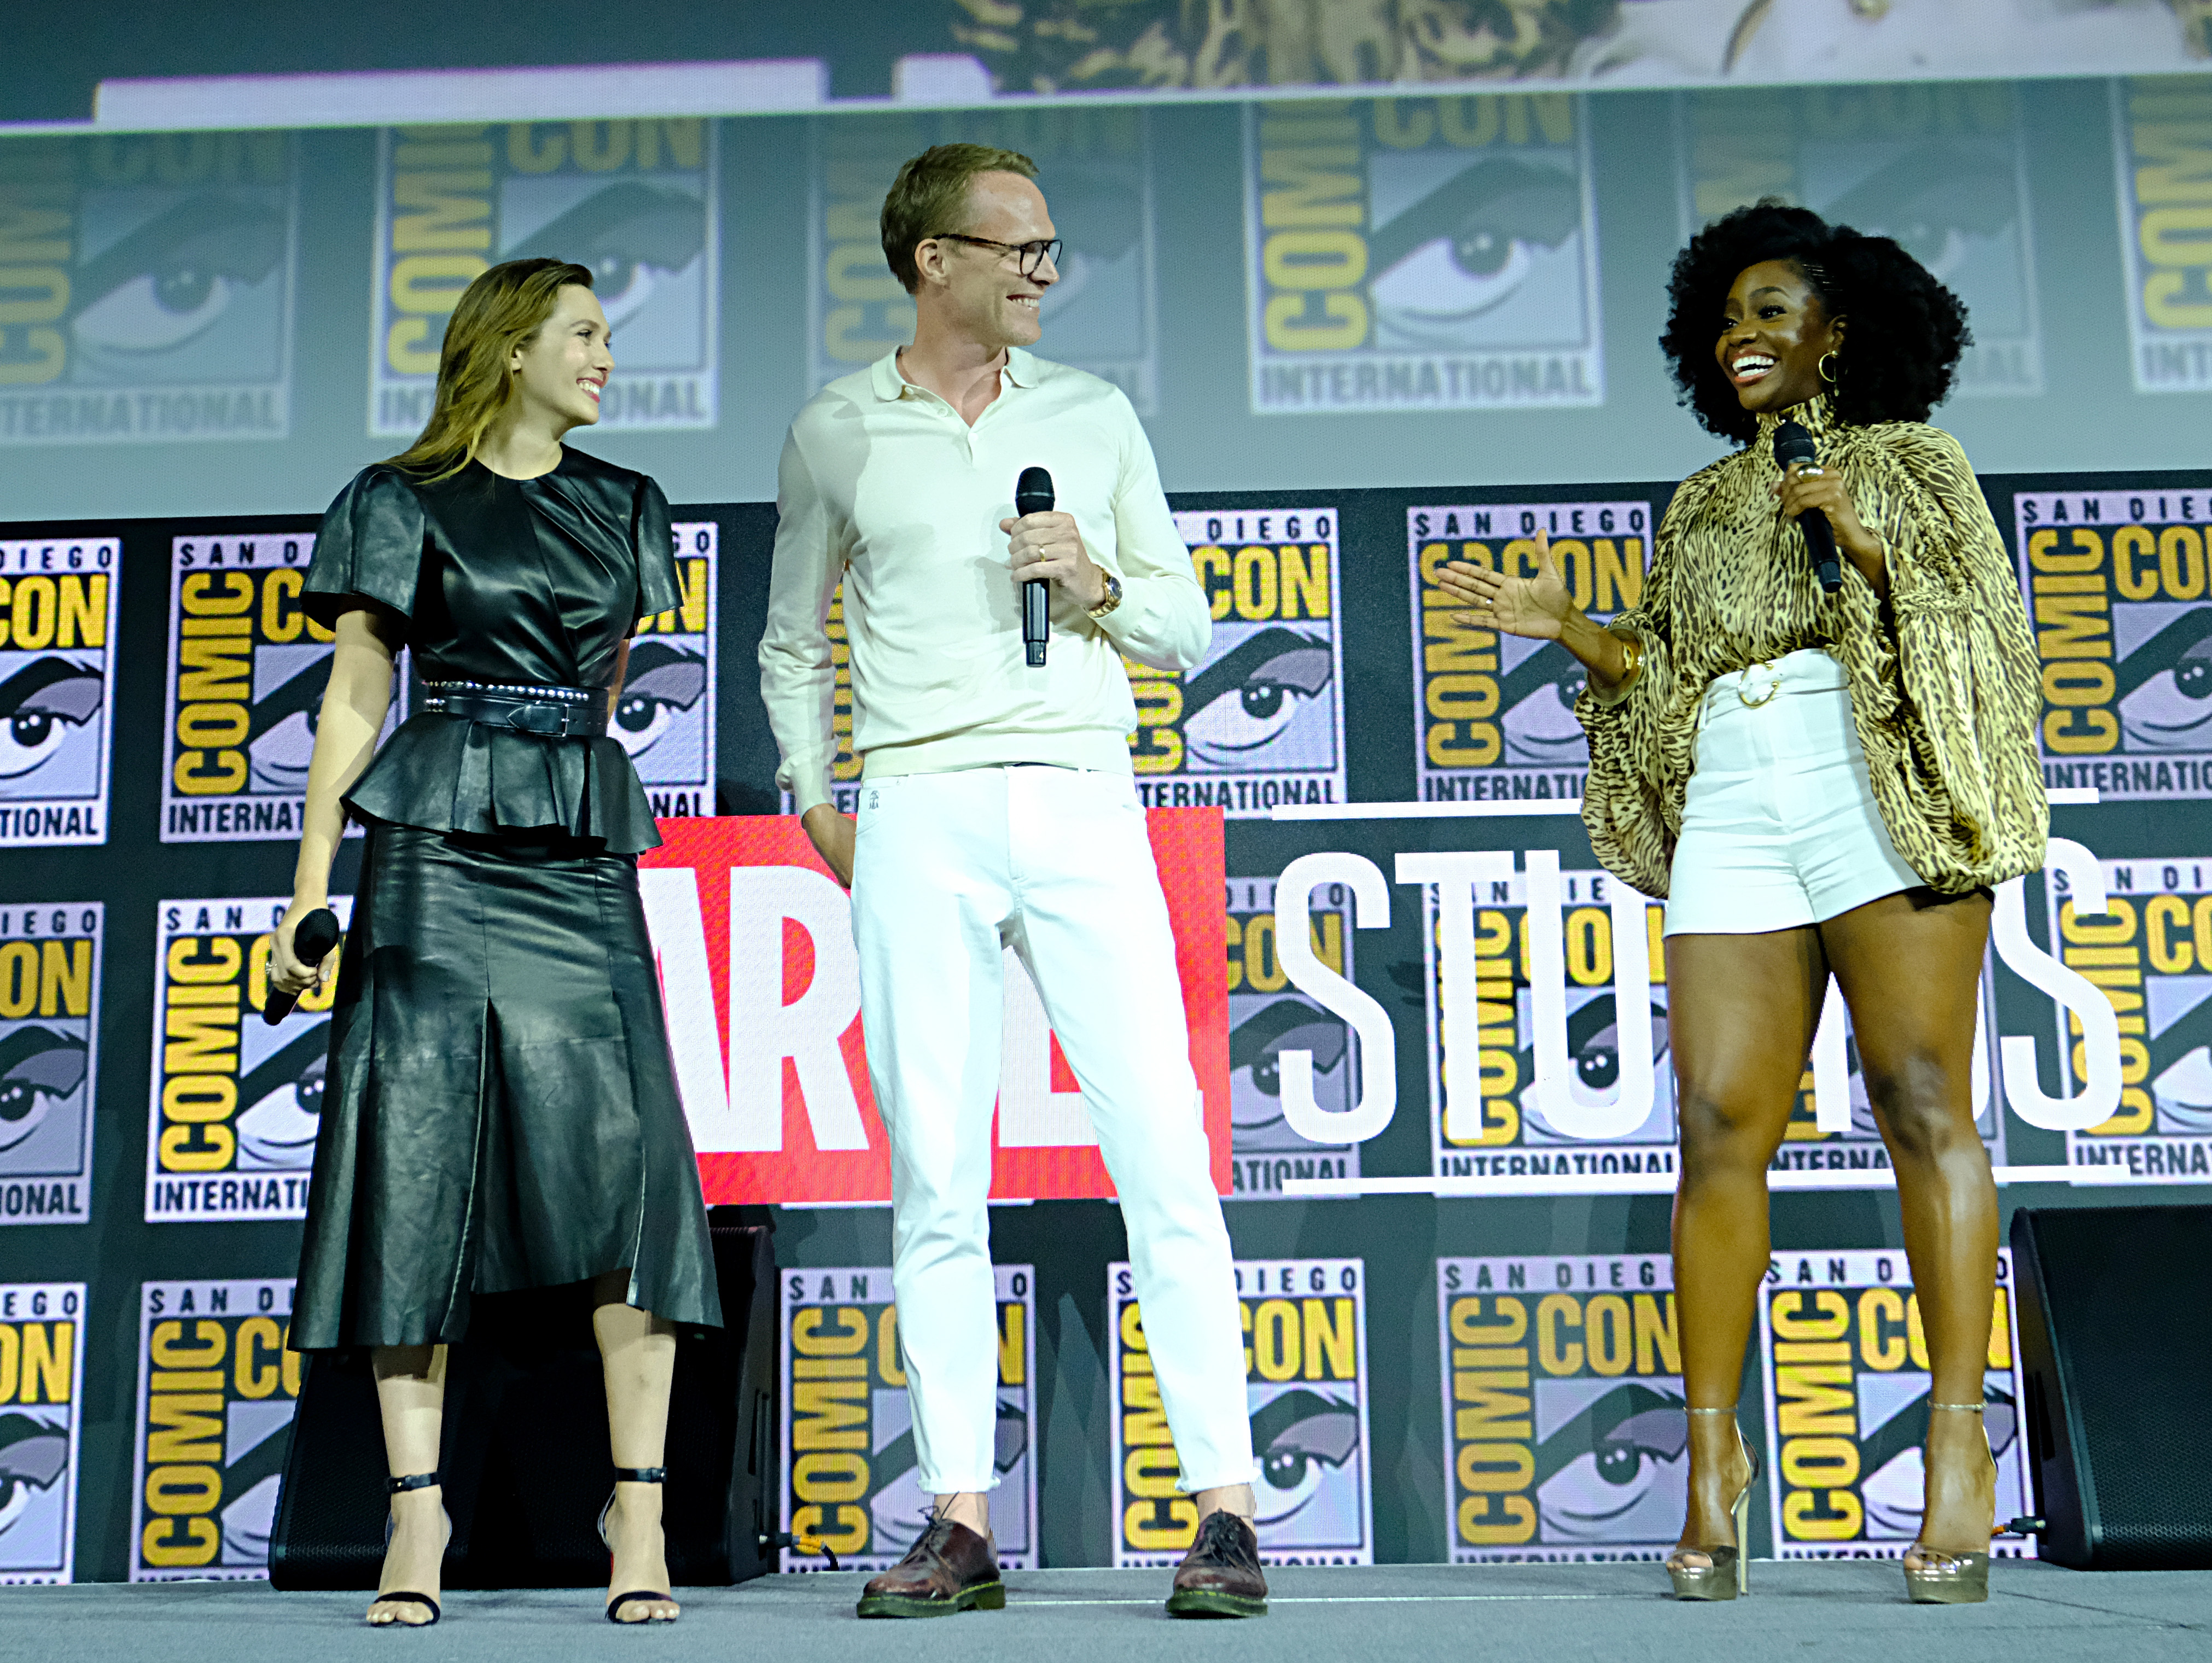 WandaVision - Elizabeth Olsen, Paul Bettany, and Teyonah Parris